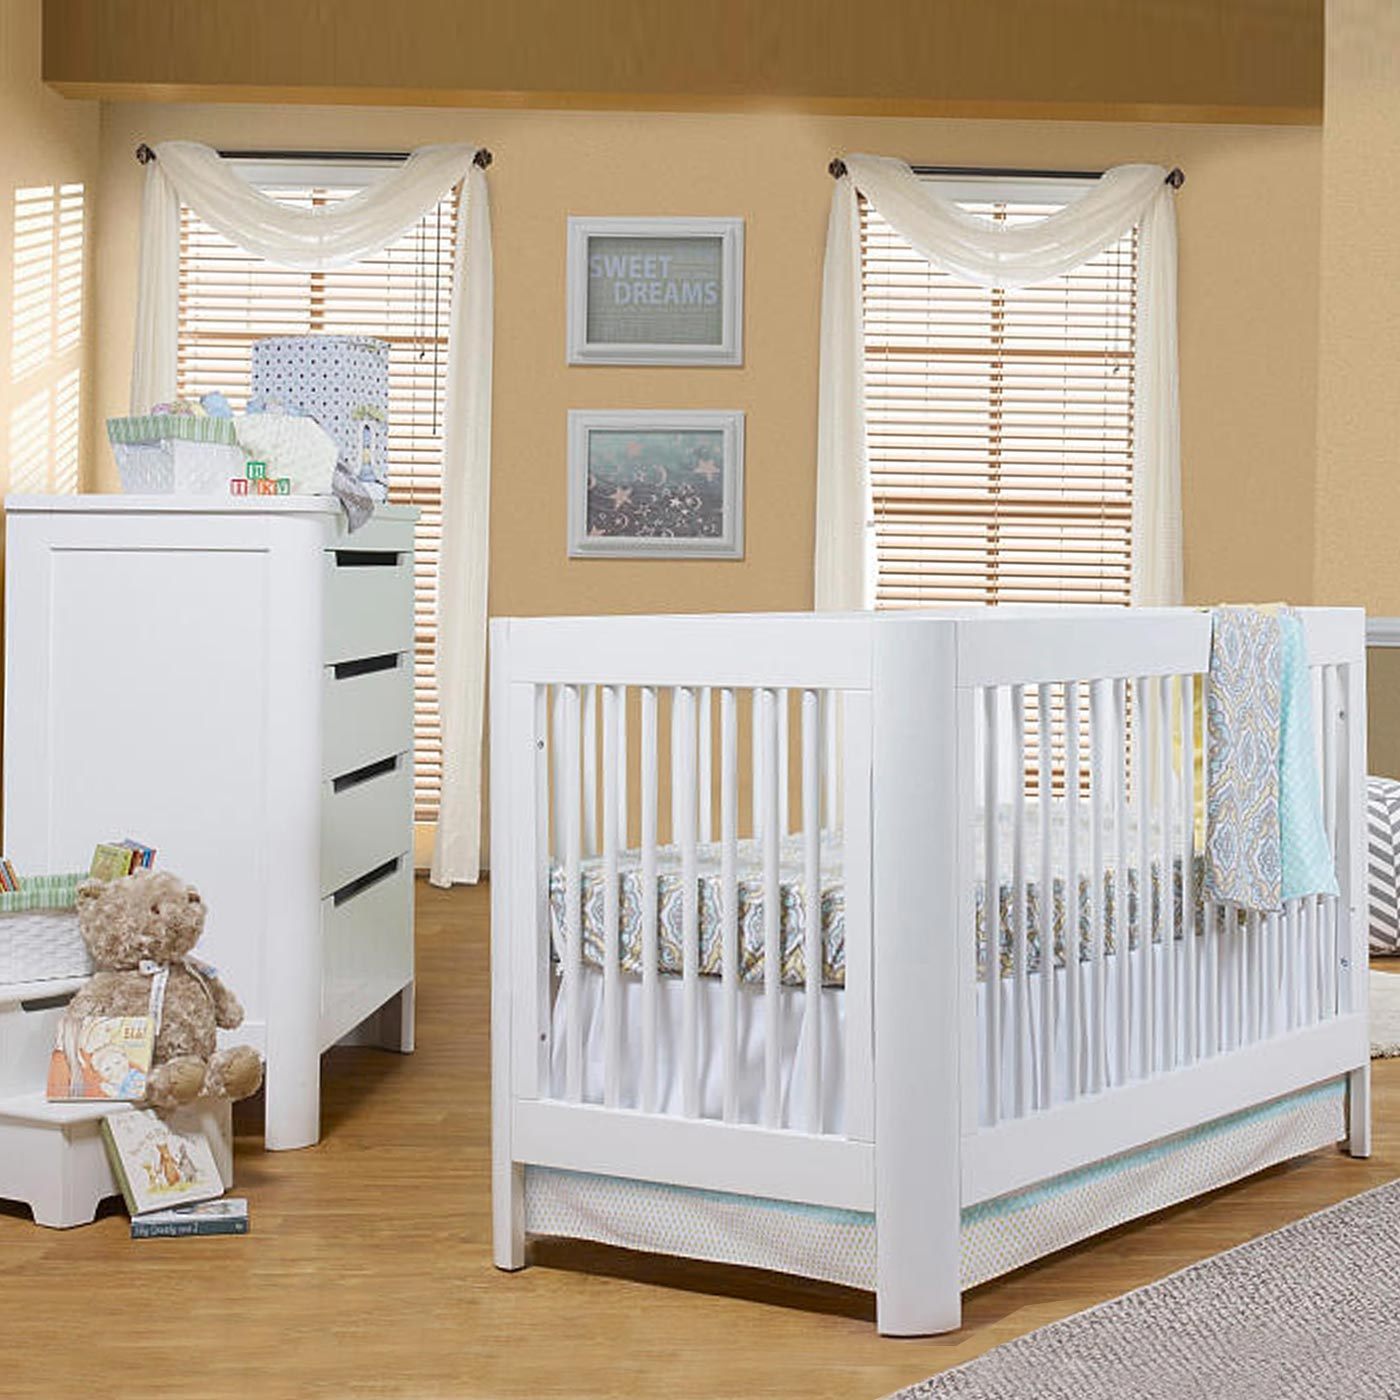 Picture of: Changing Tables for Baby Nursery